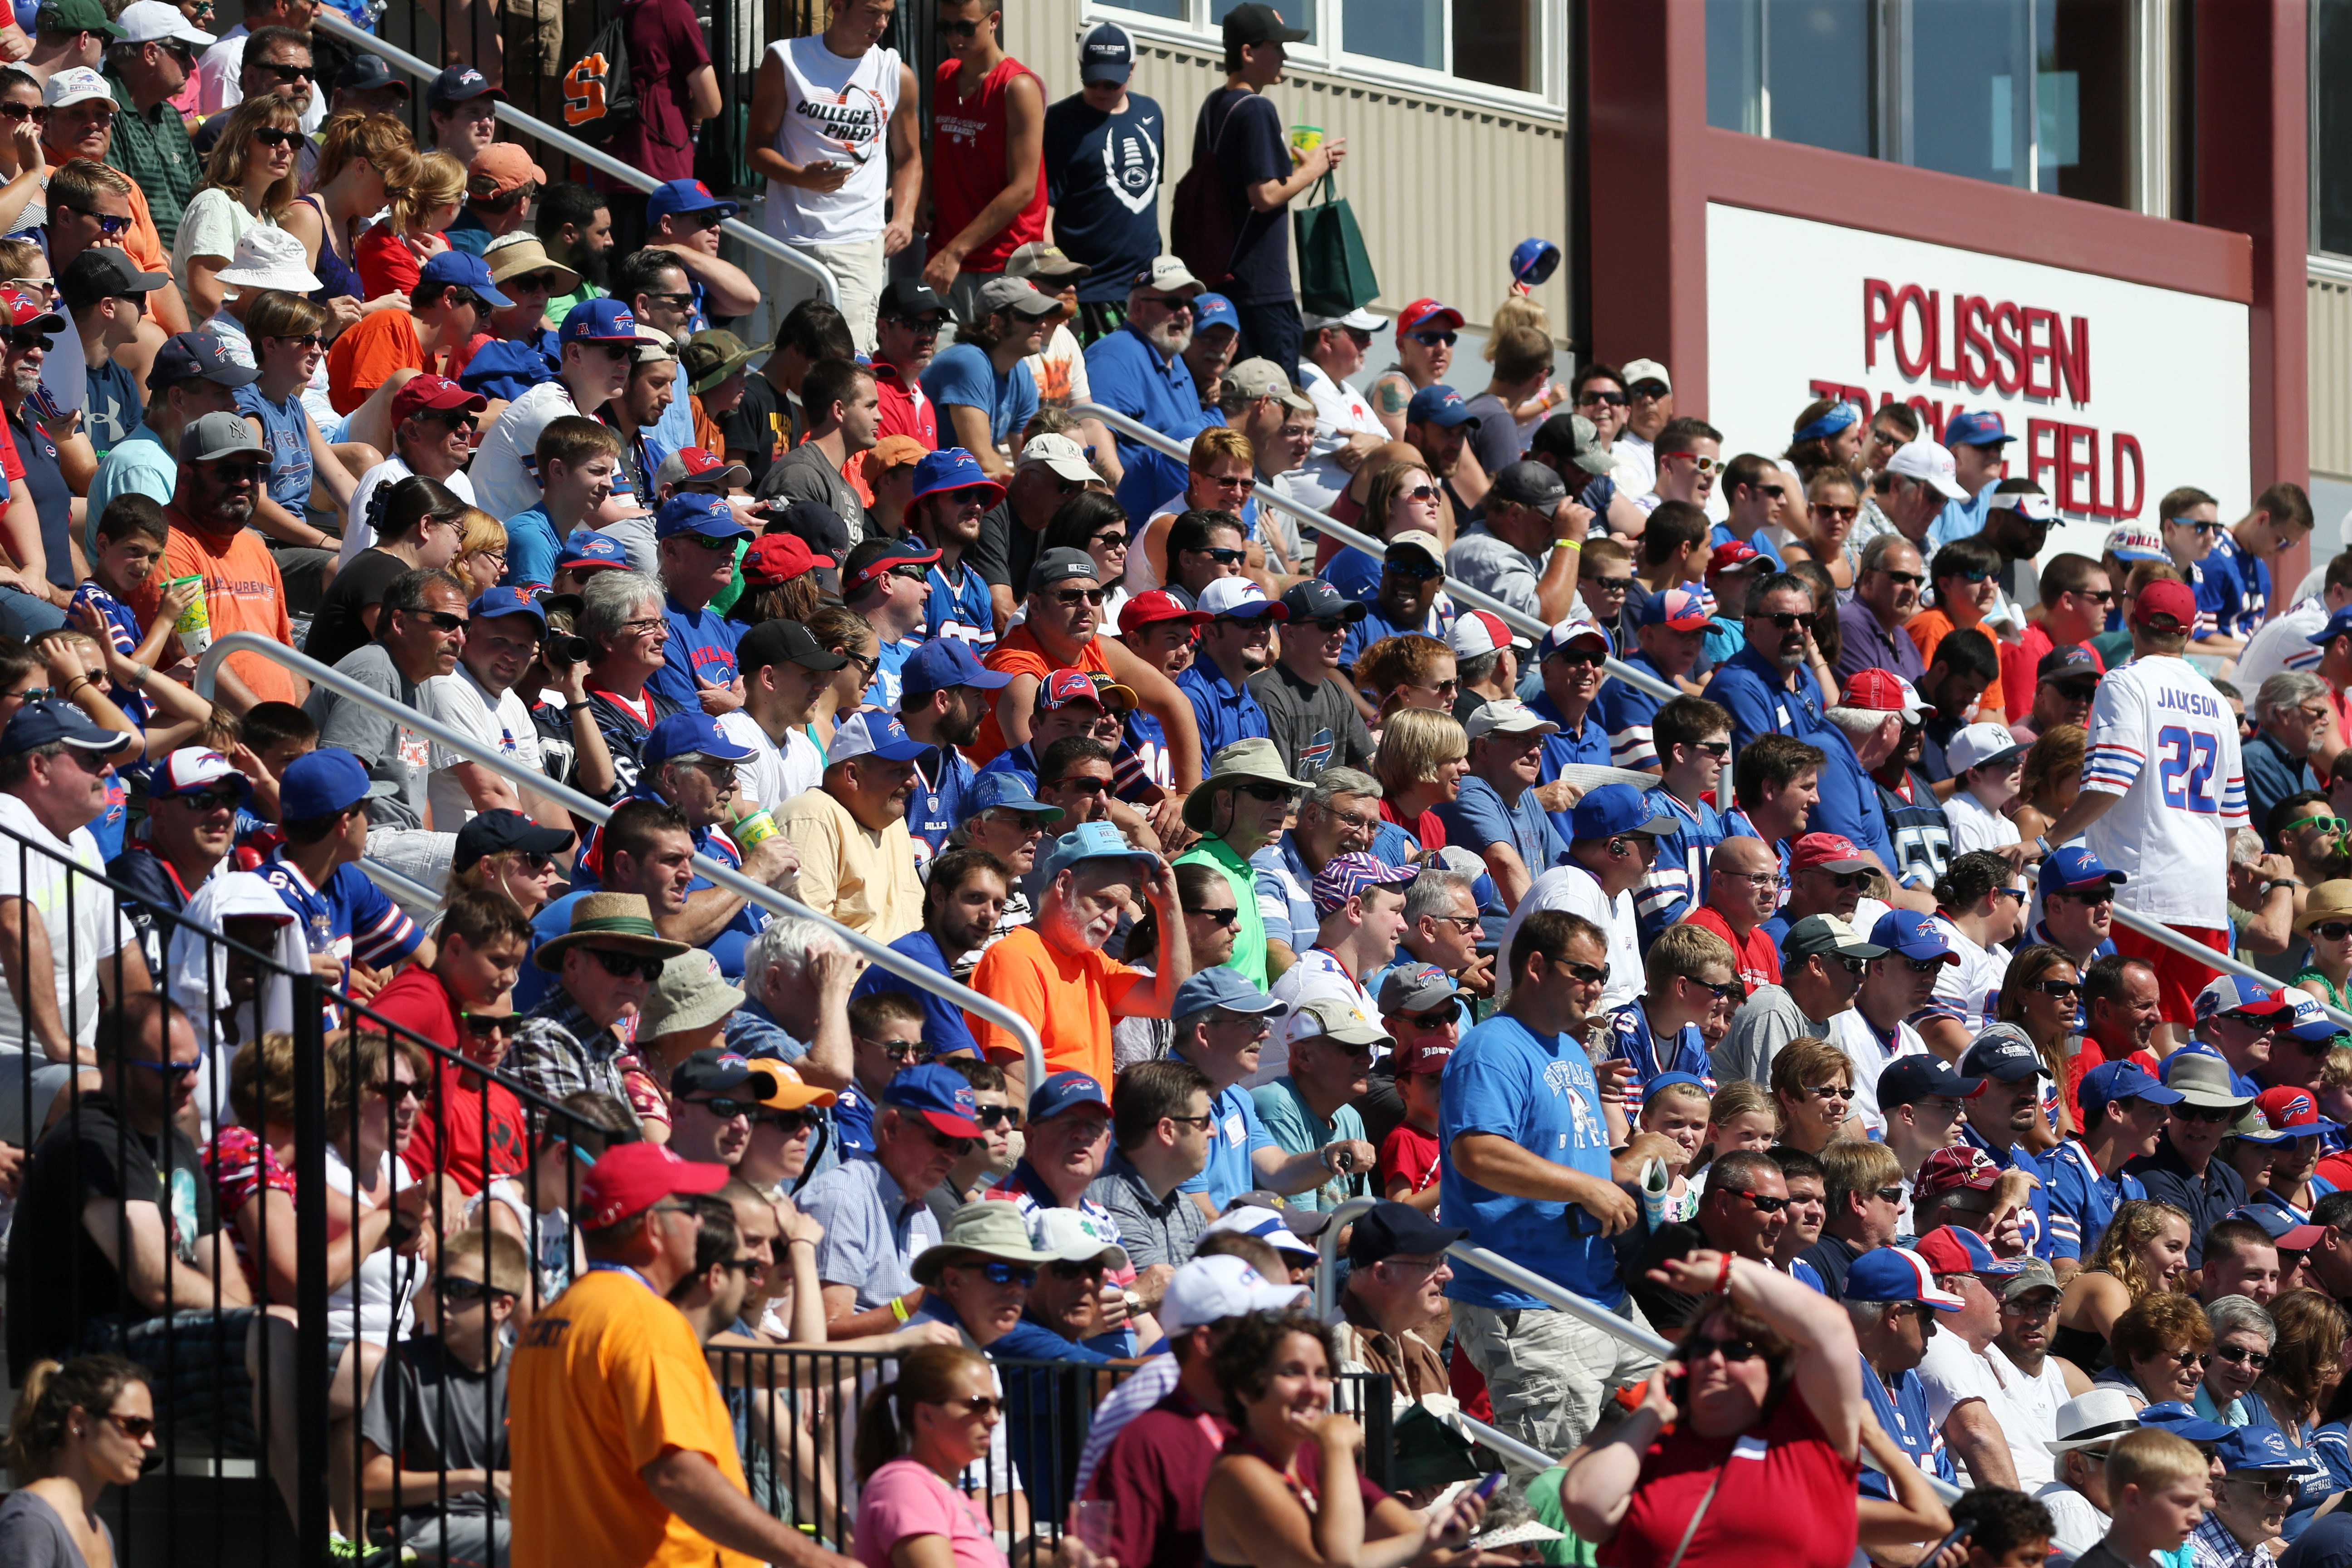 Fans watching a player drop a pass can tweet about it. But the Buffalo Bills' new media policy says reporters won't be allowed to do the same. (James P. McCoy/ Buffalo News)